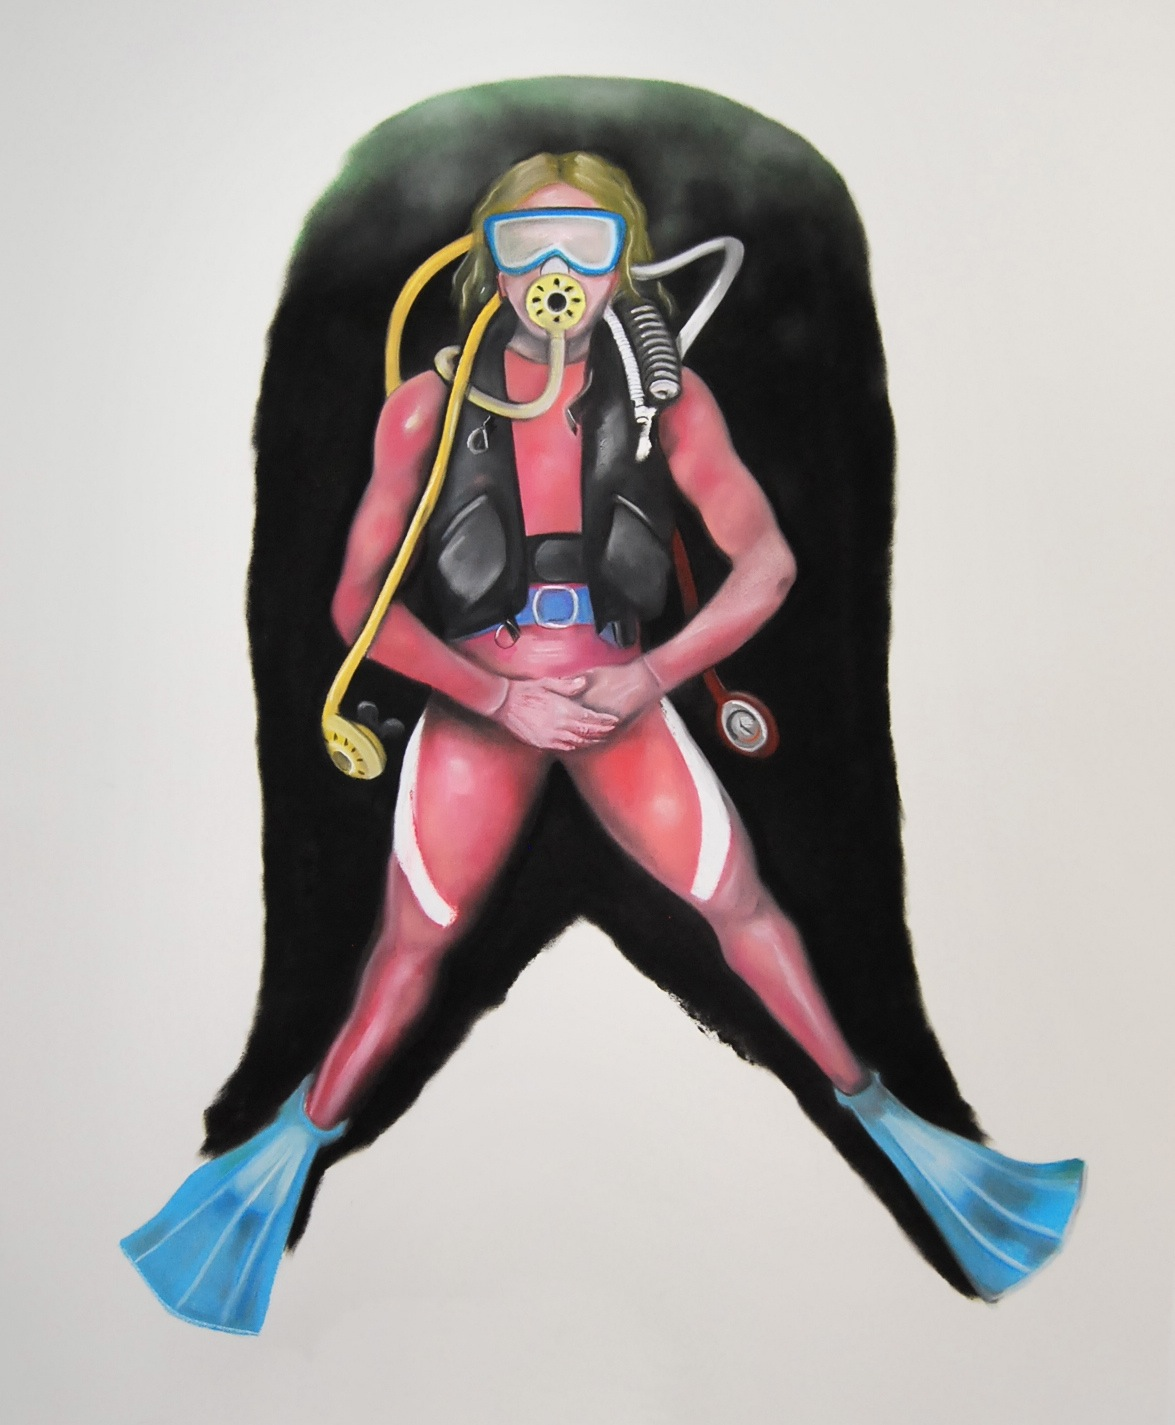 Self-Portrait in pink diving suit